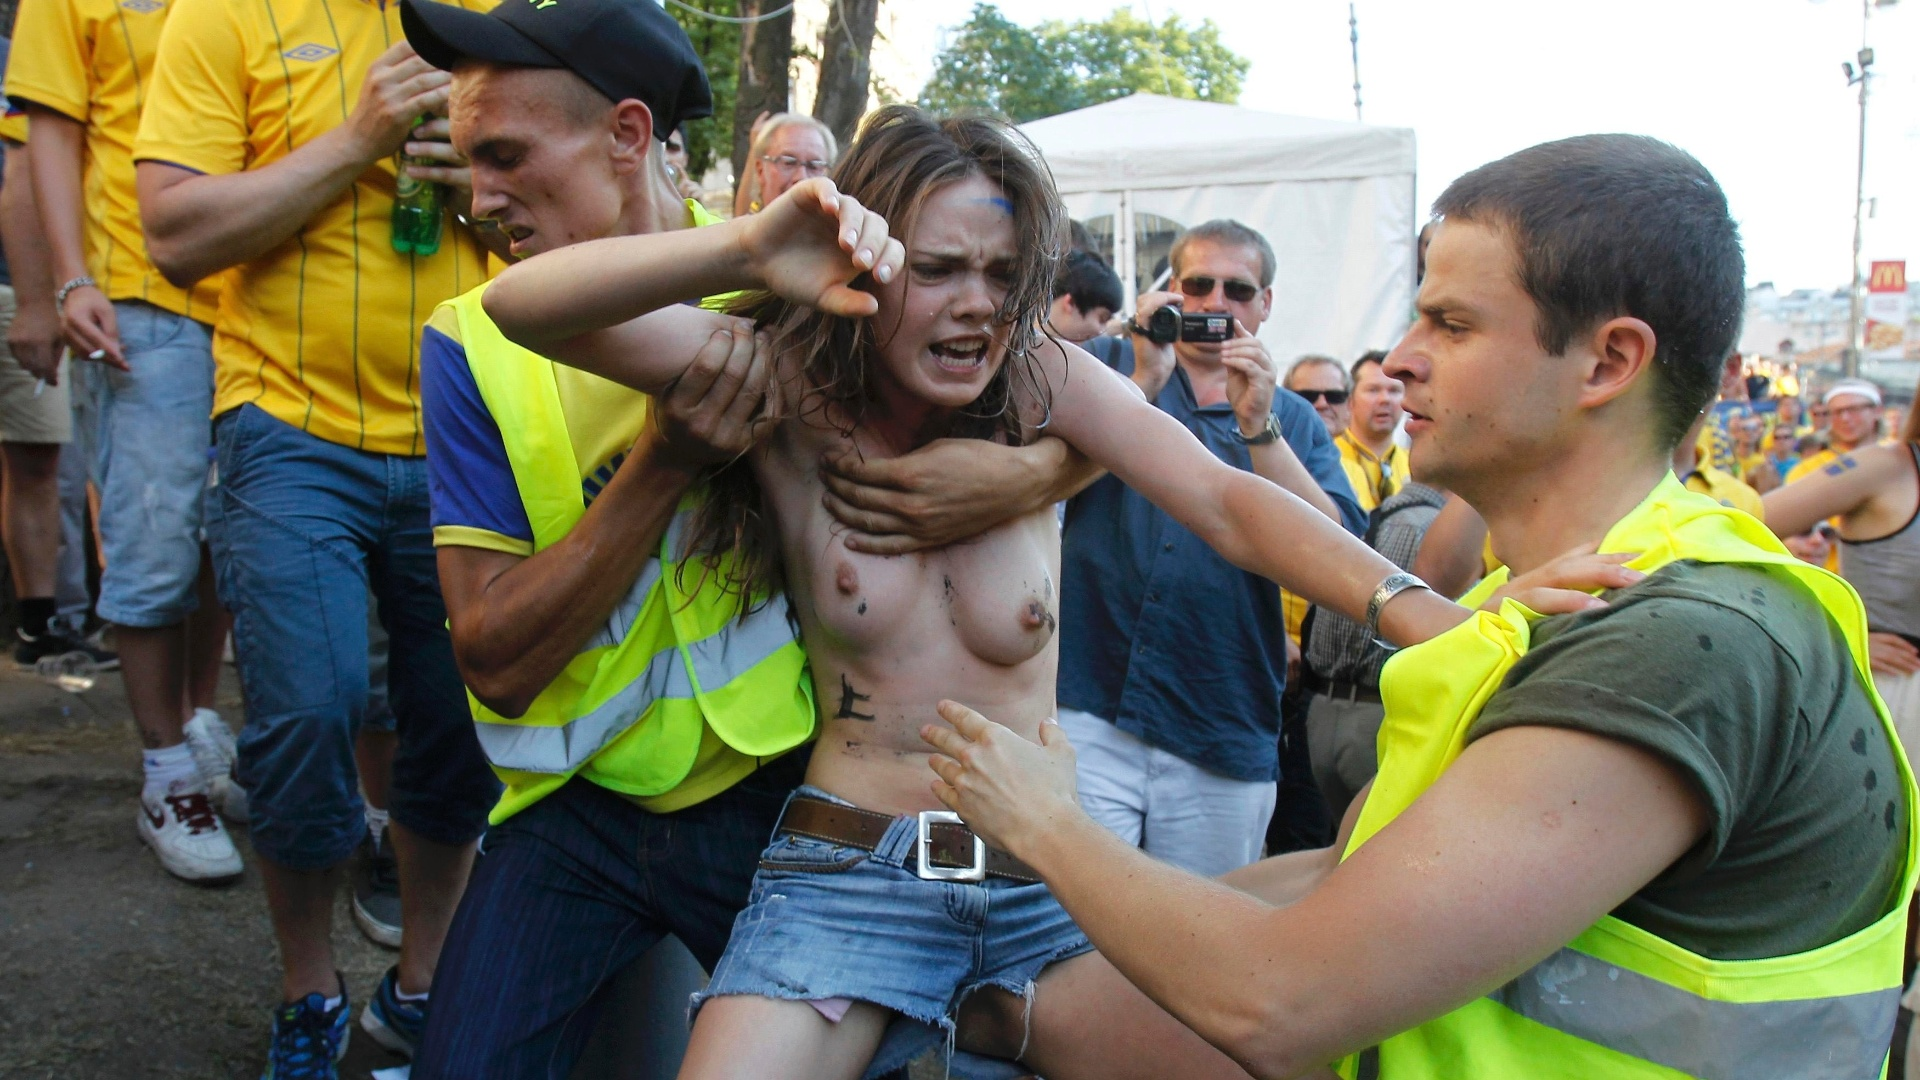 Ativista do Femen  contida por agente de segurana aps protestar contra a realizao da Euro